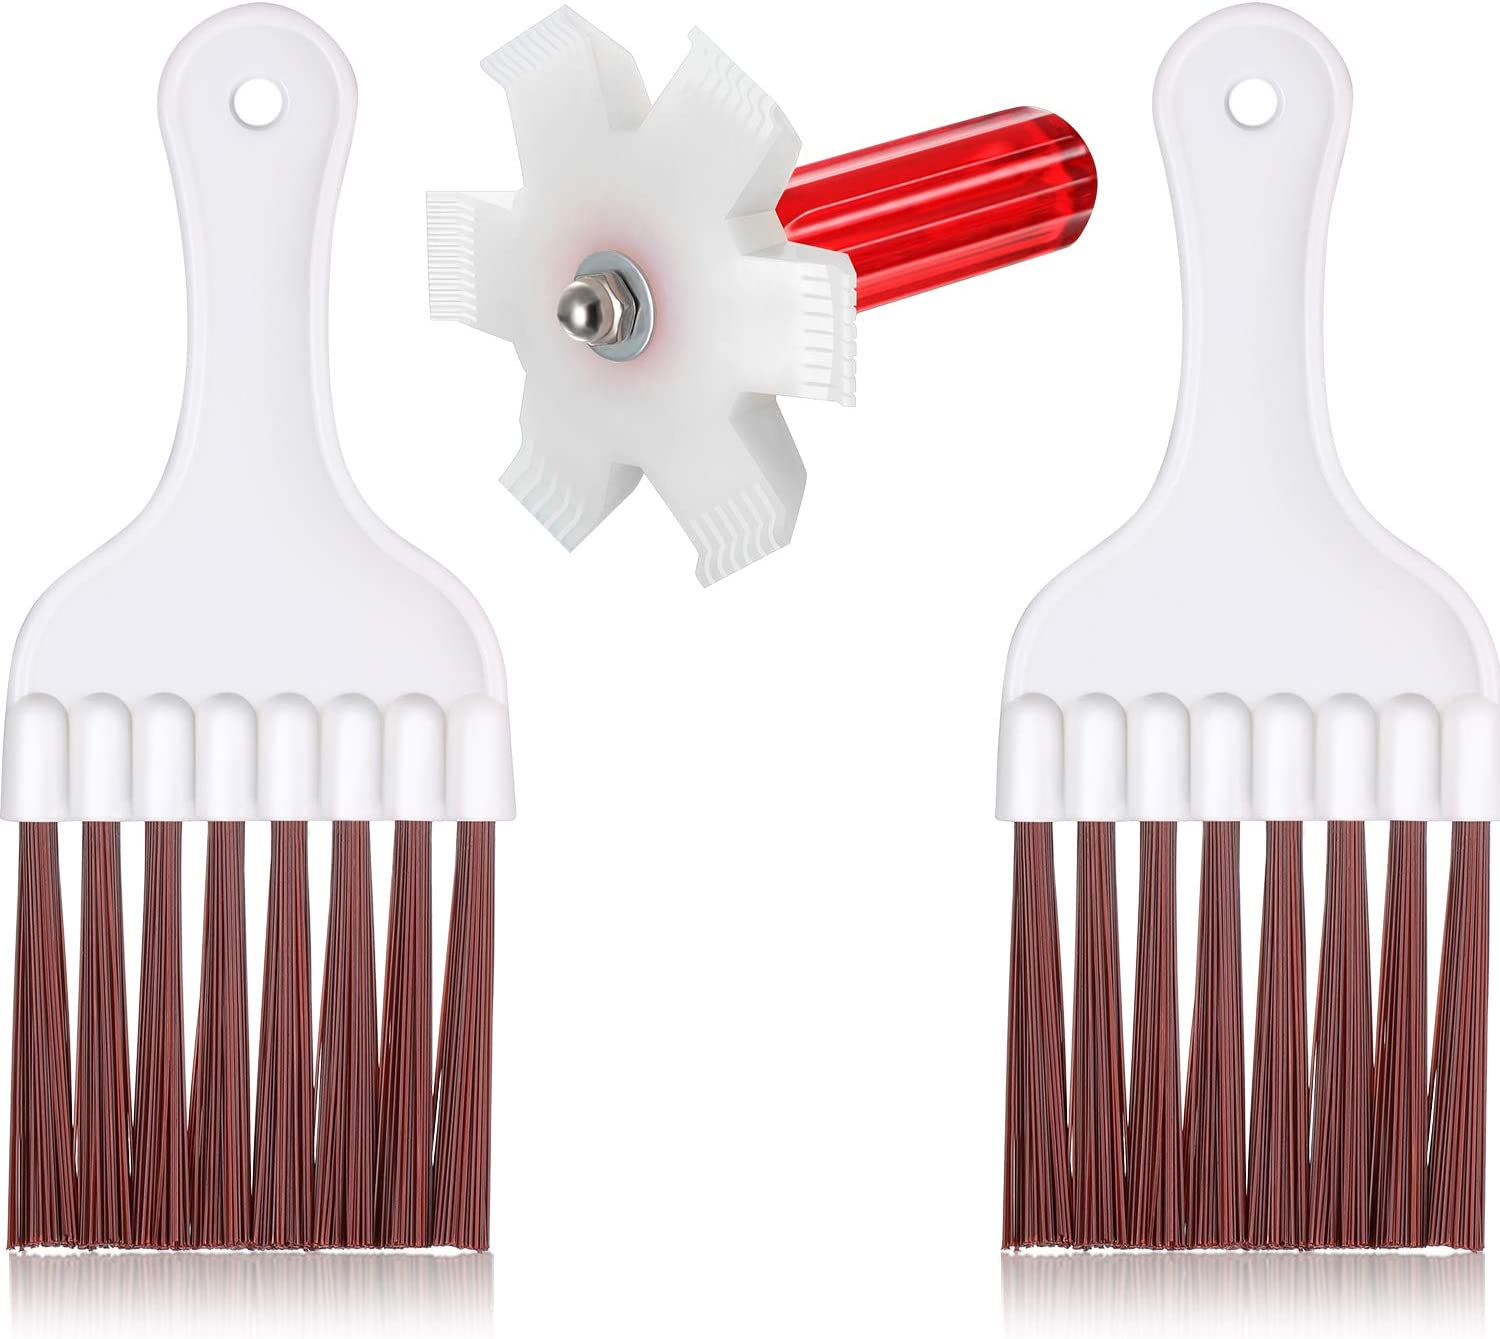 3 Pieces Condenser Fin Straightener AC Fin Comb Air Conditioner Condenser Fin Cleaning Brush Refrigerator Coil Cleaning Whisk Brush